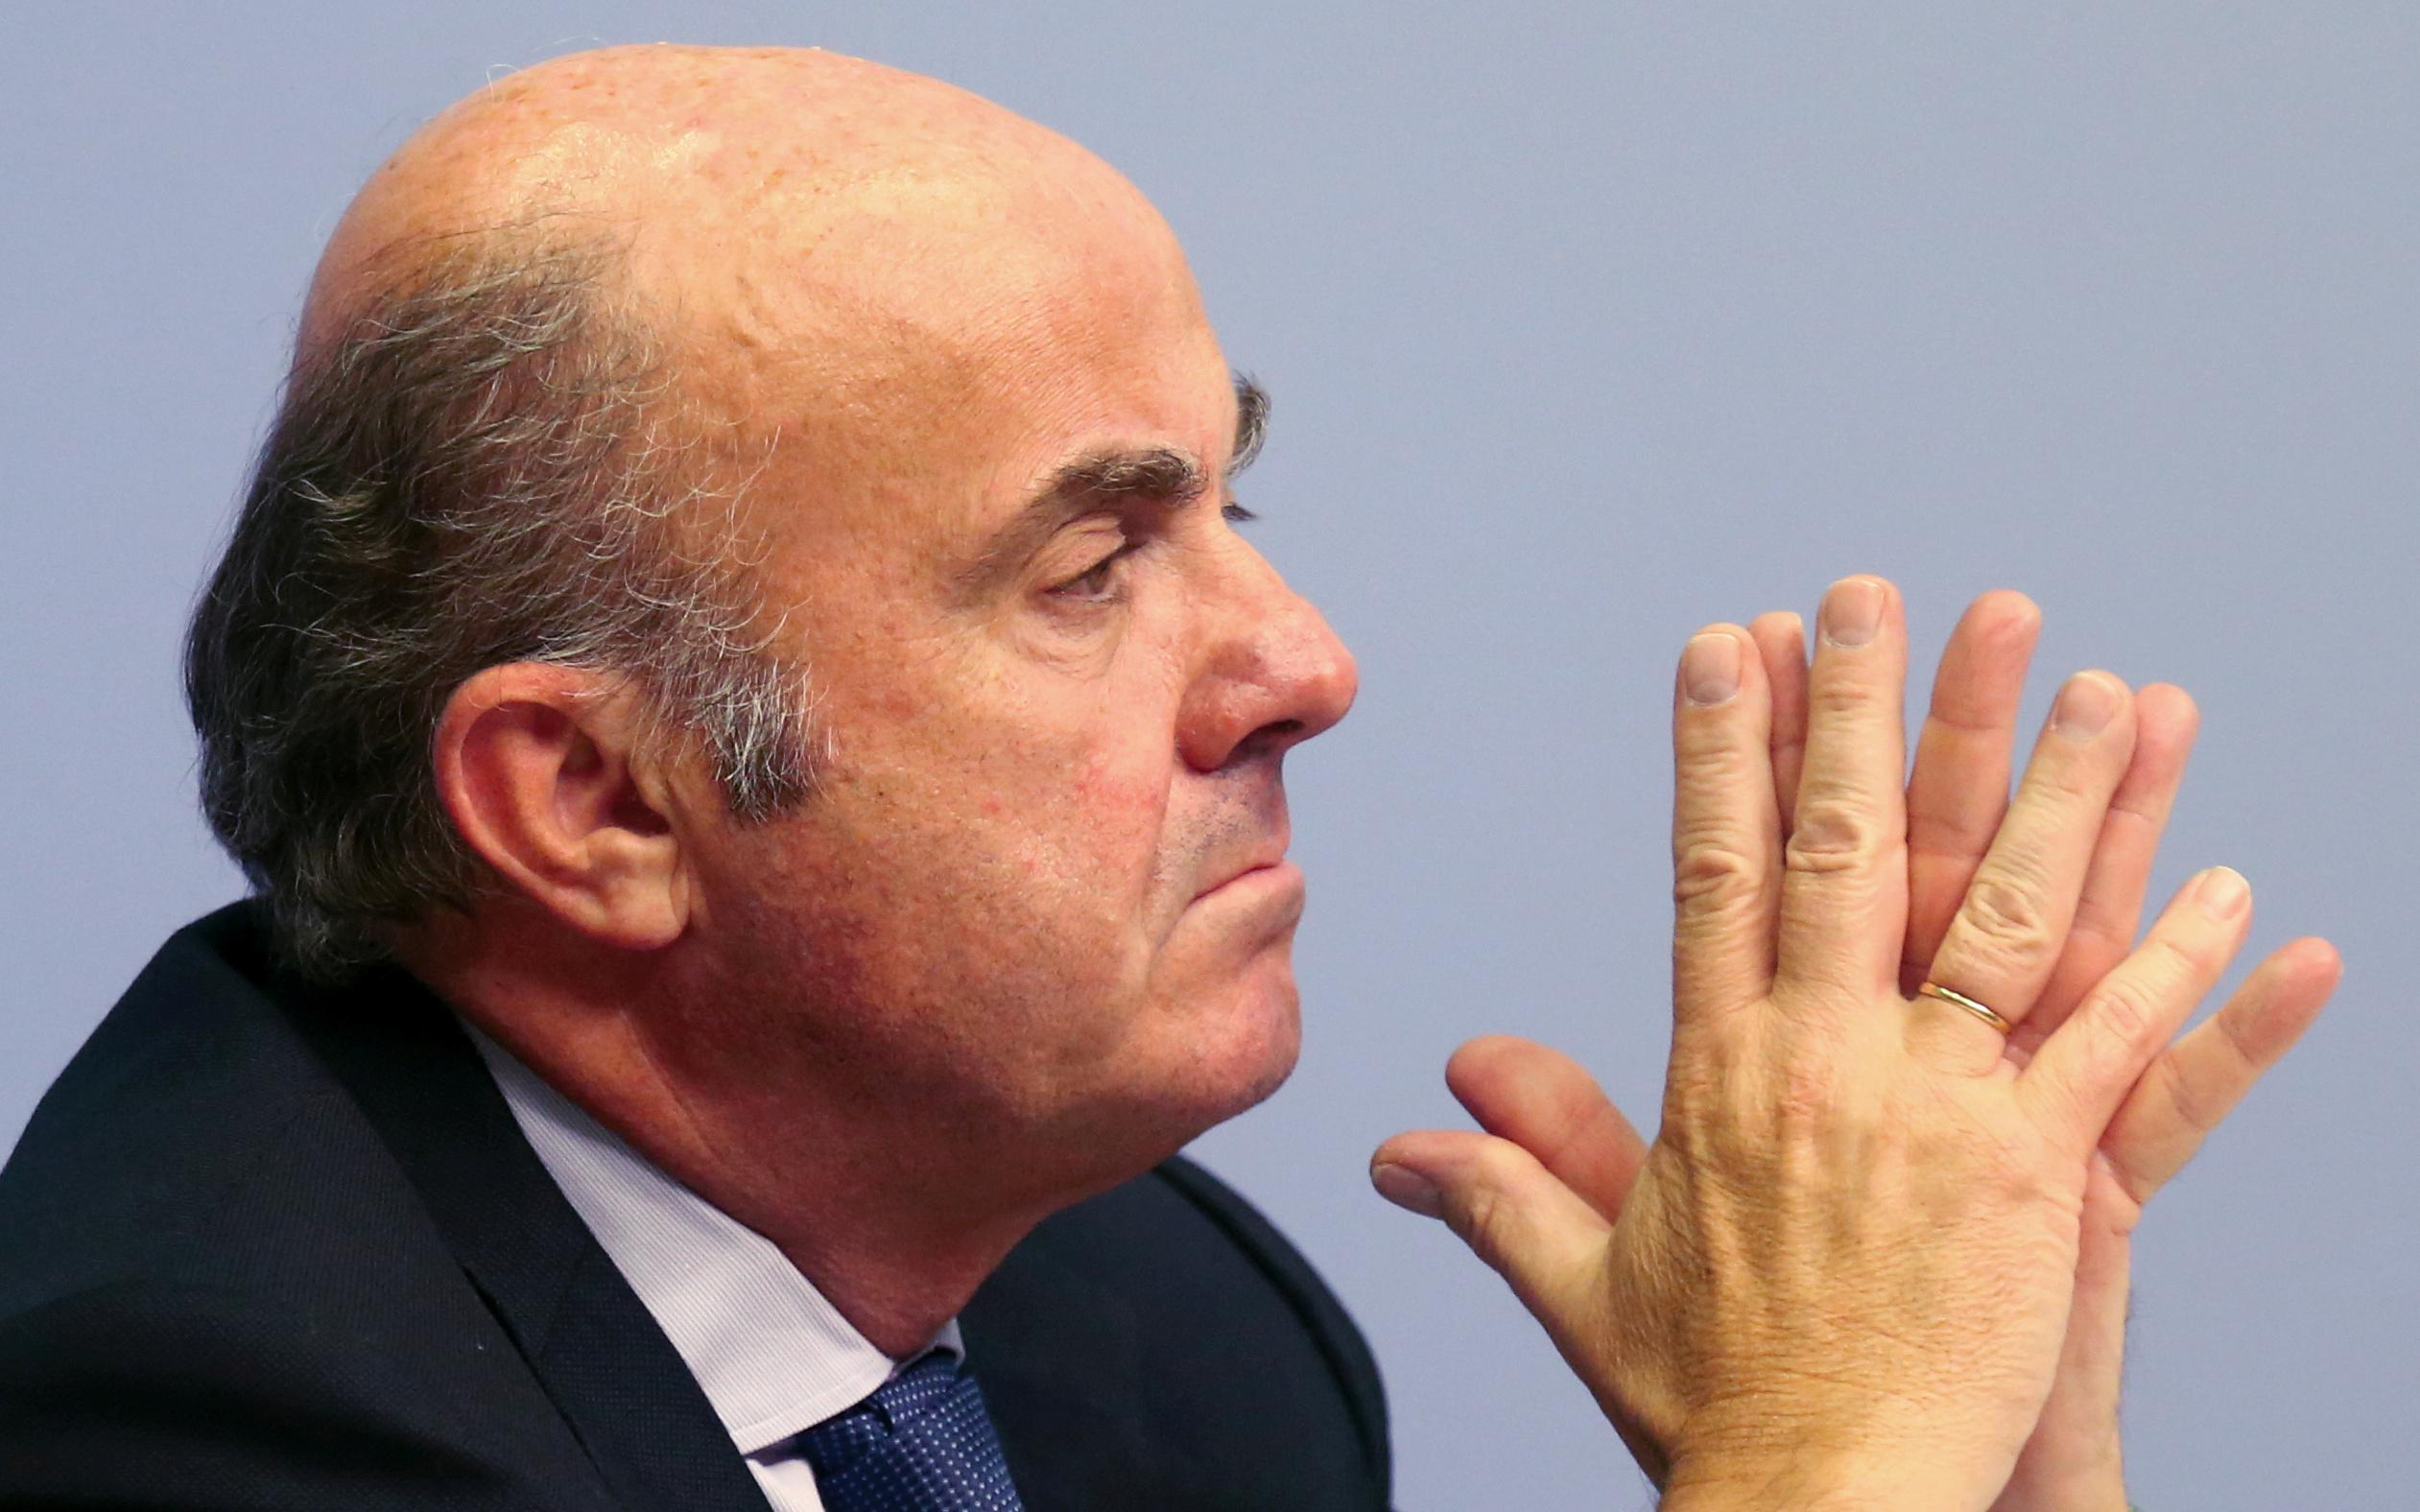 Low valuations hamper bank mergers in Europe: ECB's De Guindos